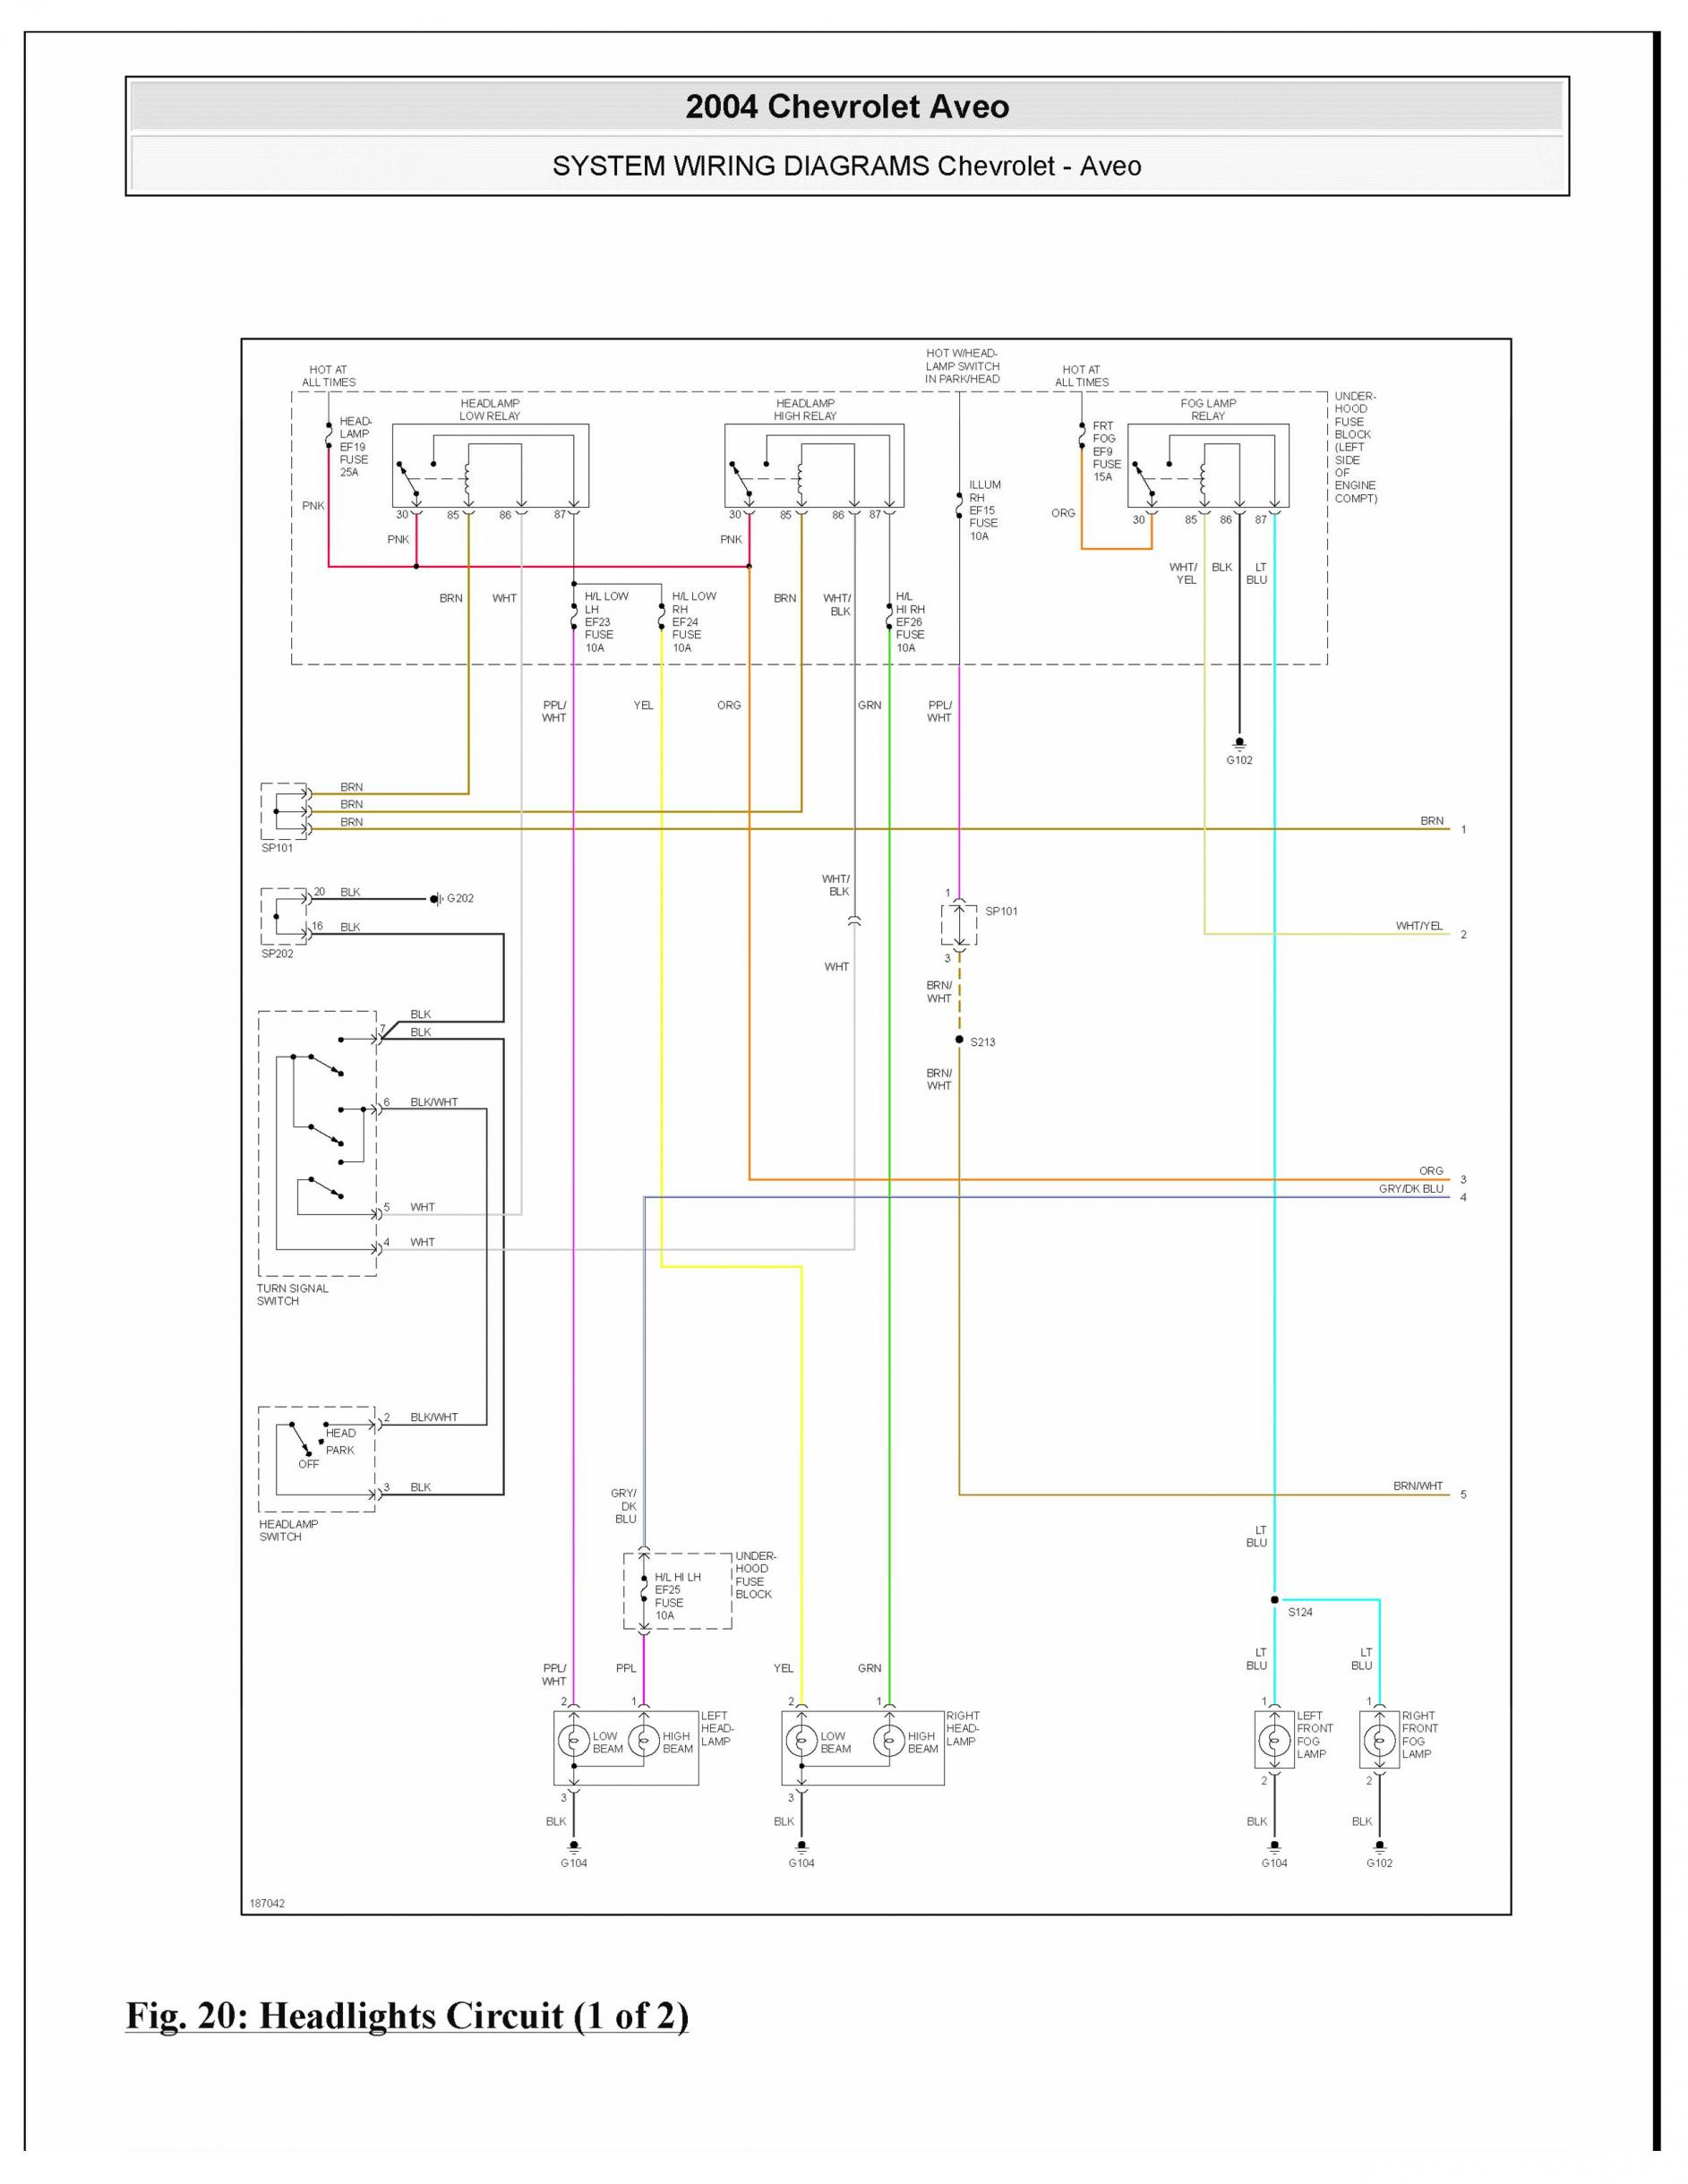 2006 chevy aveo wiring diagram no headlights can a wiring diagram headlights wiring aveo page 001 jpg views 1080 size